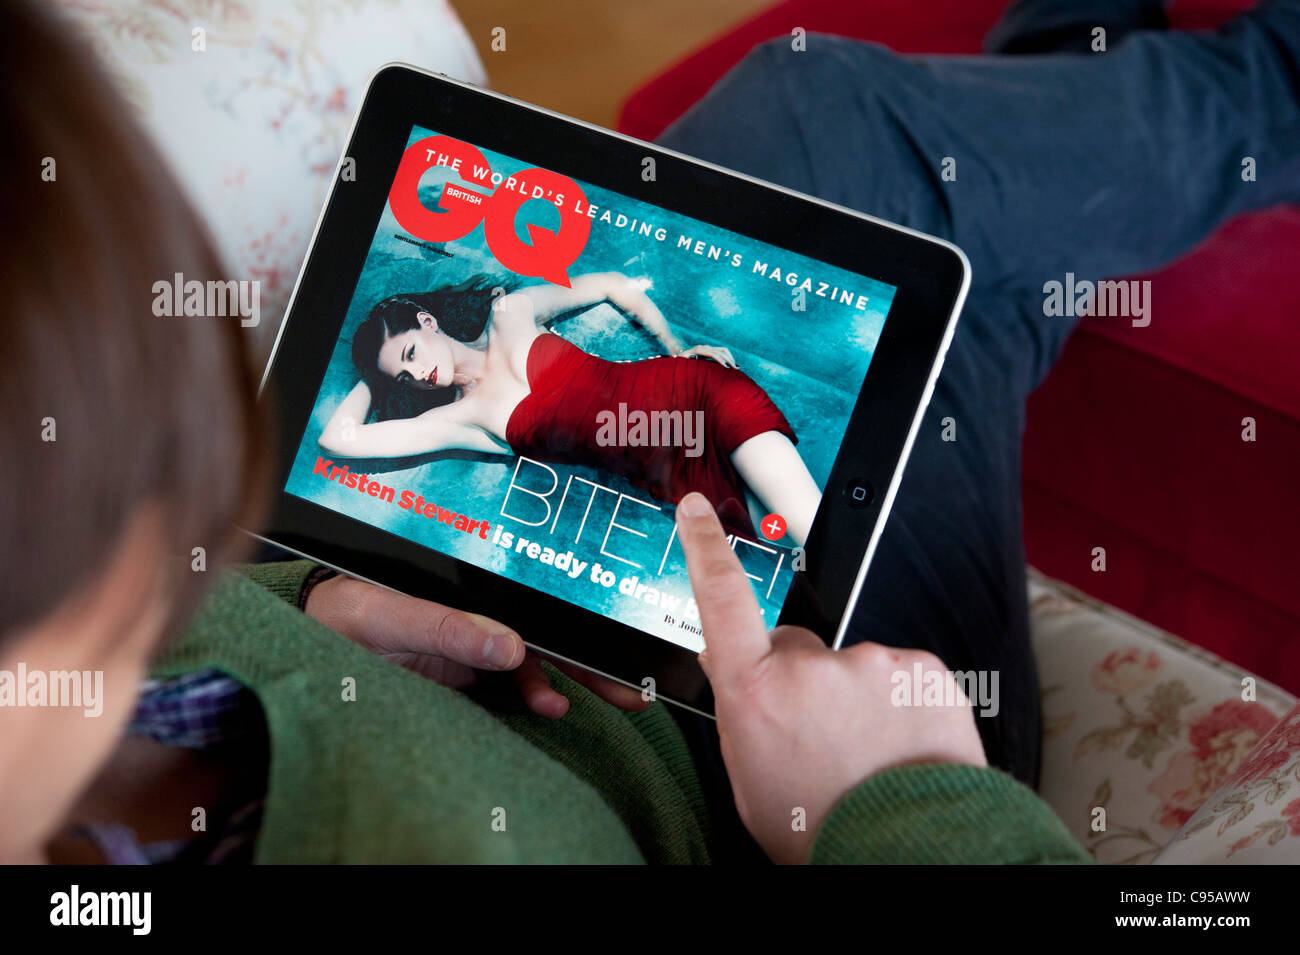 Woman using iPad tablet computer to read GQ magazine online edition - Stock Image